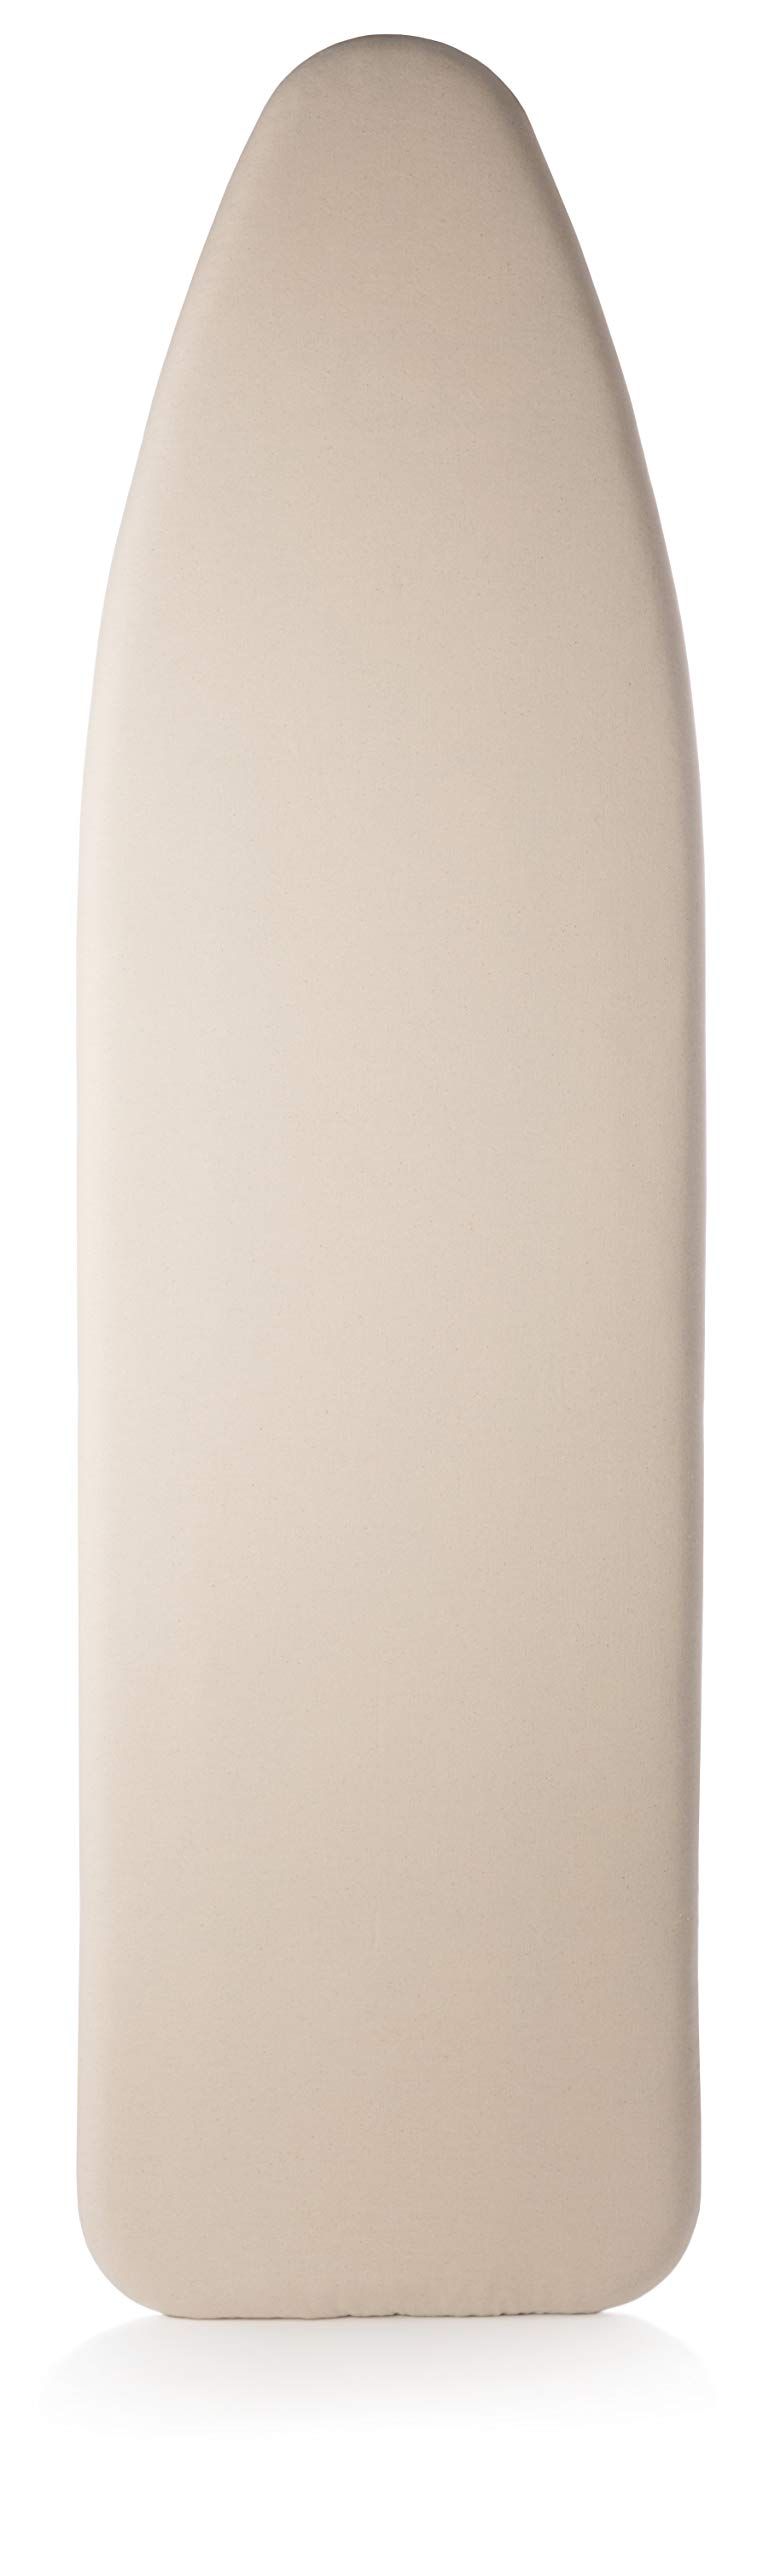 TIVIT Ironing Board Cover 18 x 54 Wide Chemical Free Eco-Friendly Padded Covers - Unbleached, Untreated Natural Cotton & Wool Pad - 2 Layer, 3 Fastener Straps, Pull Bungee Cord - Made in Italy